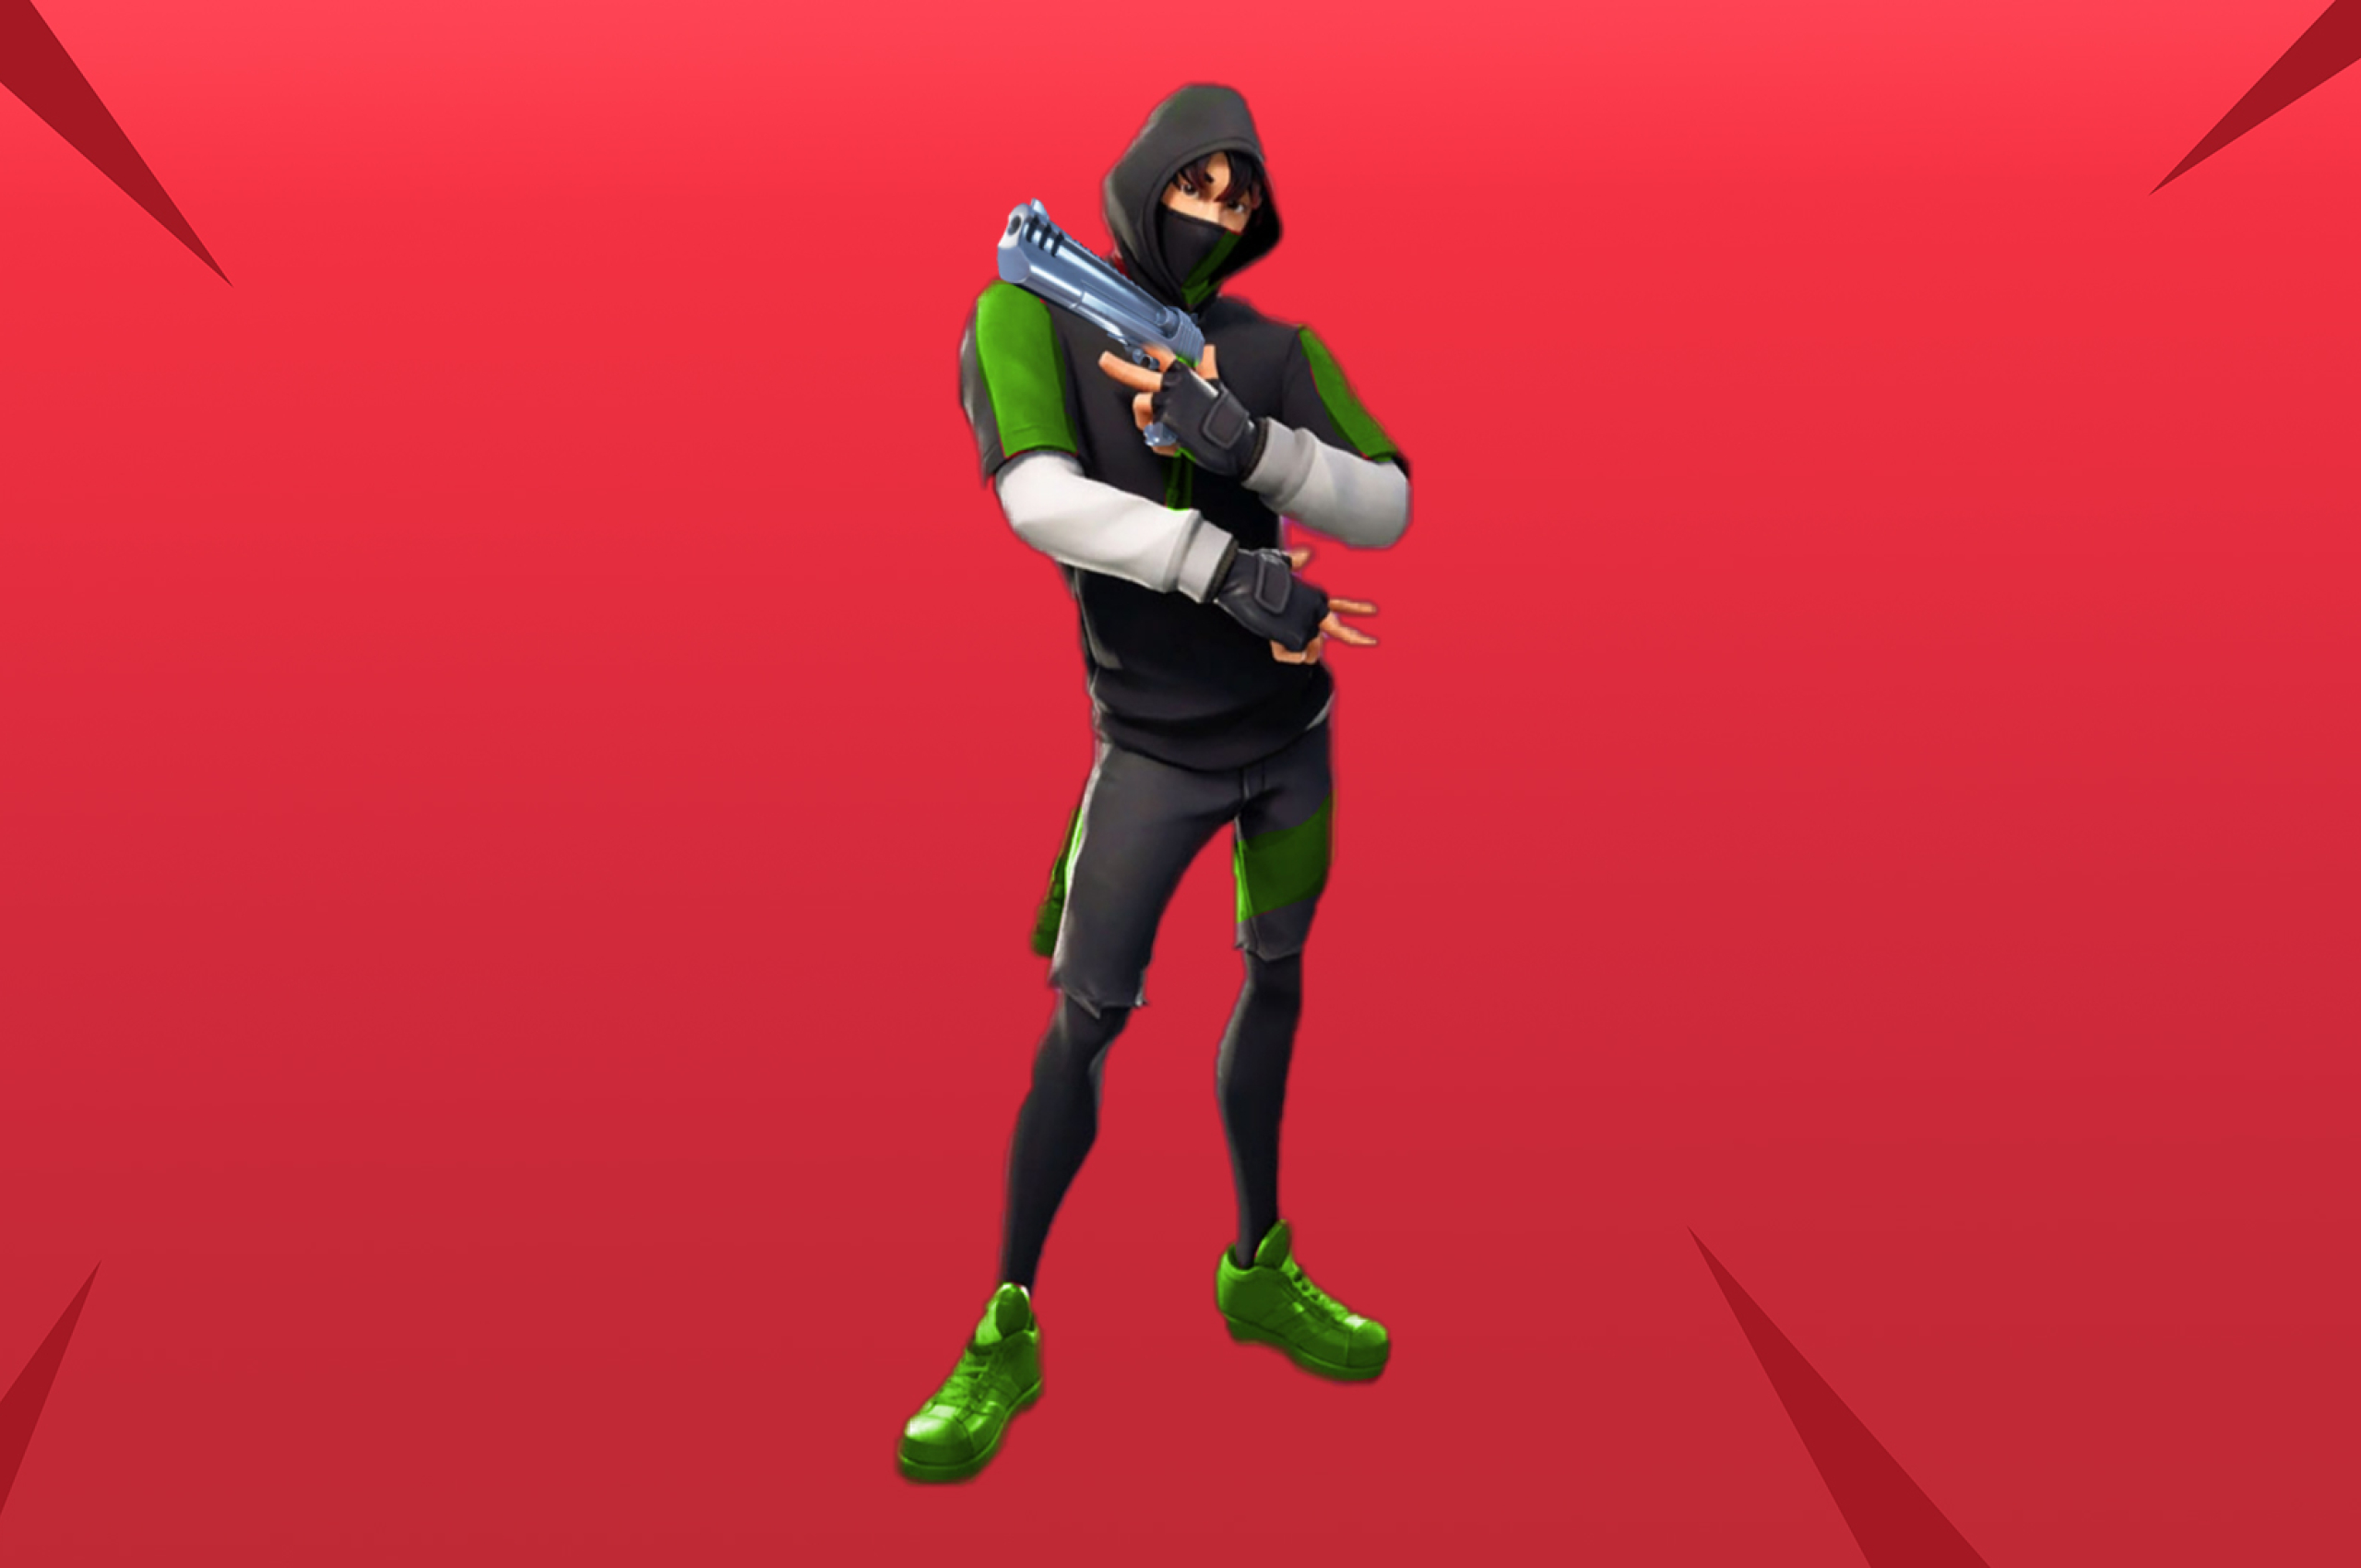 2560x1700 Ikonik Fortnite Chromebook Pixel Wallpaper Hd Games 4k Wallpapers Images Photos And Background